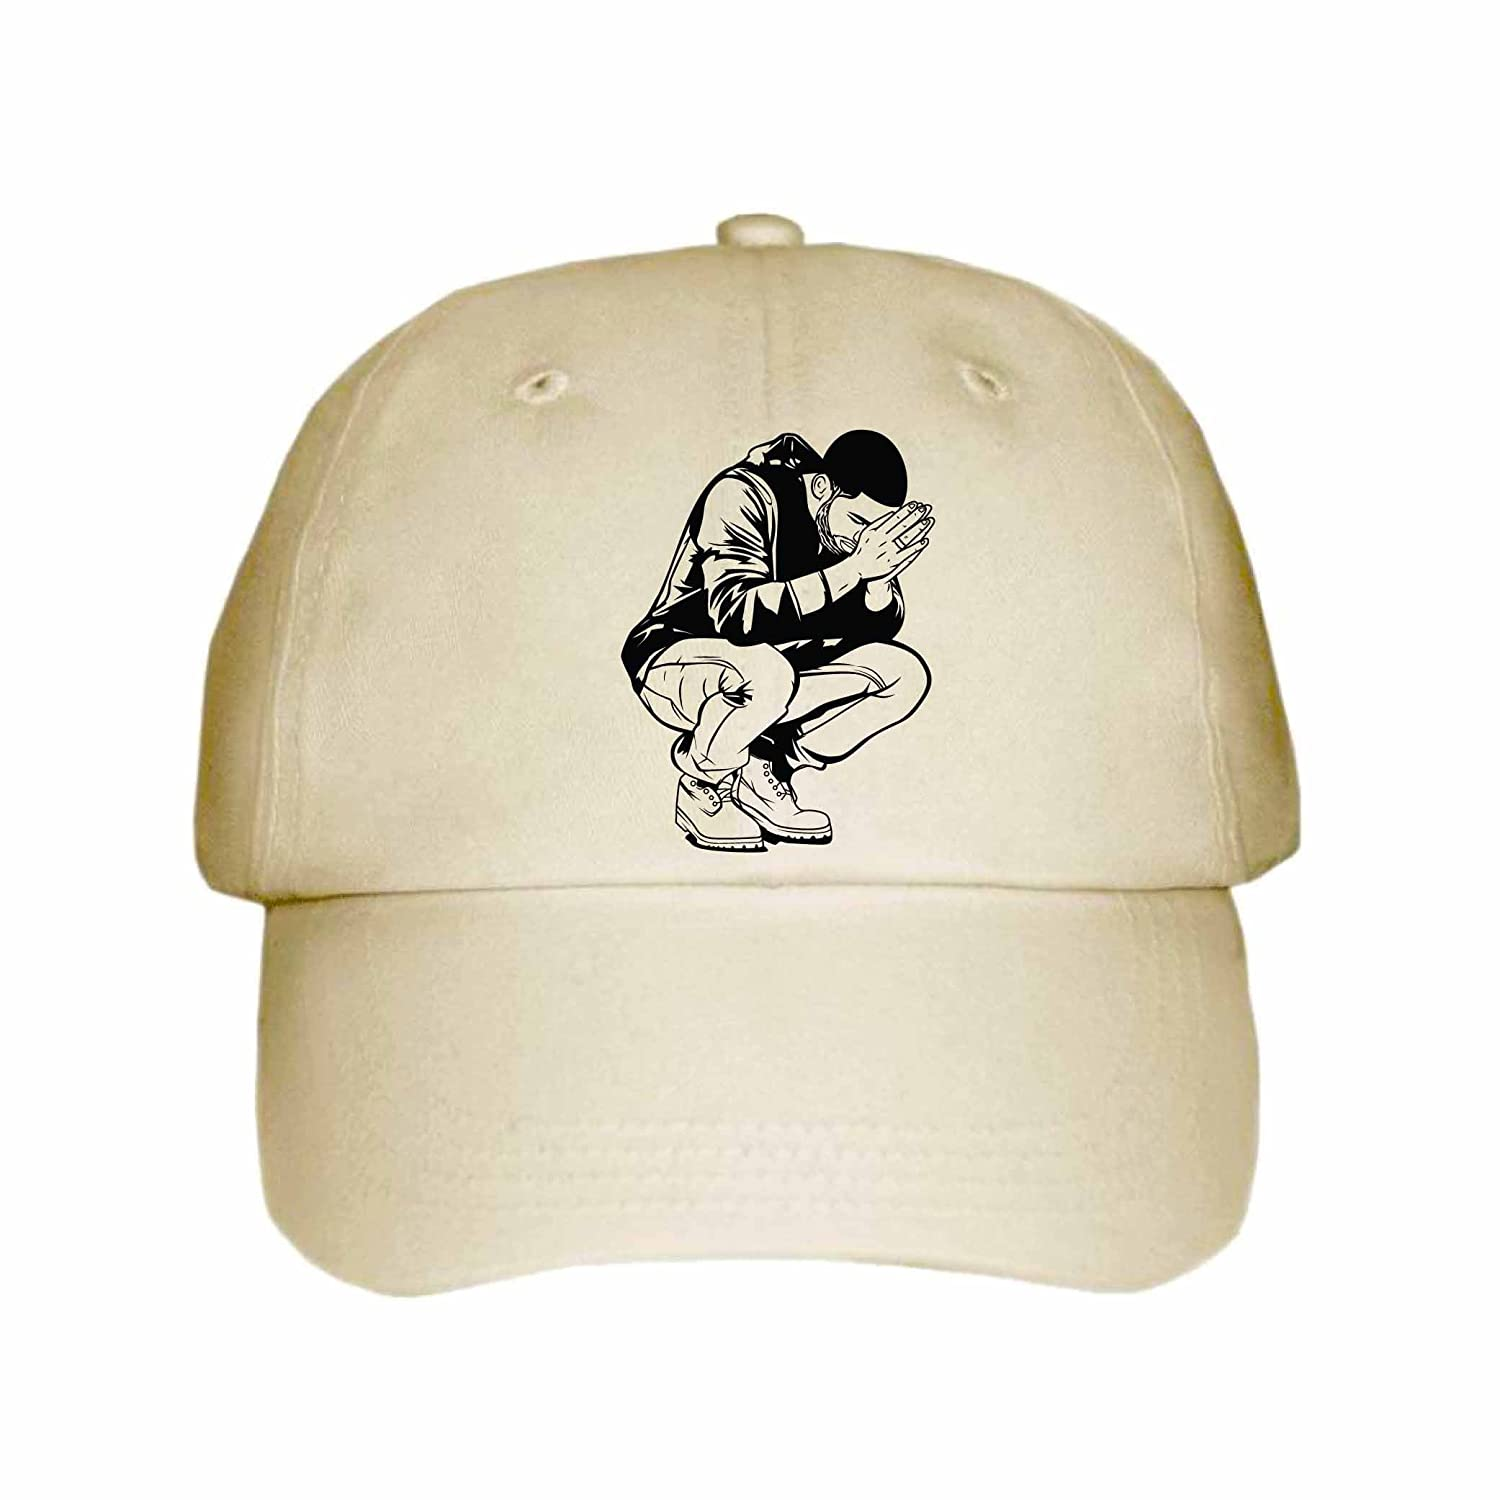 Drake 6 God Cap/Hat (Unisex) (White) Babes & Gents